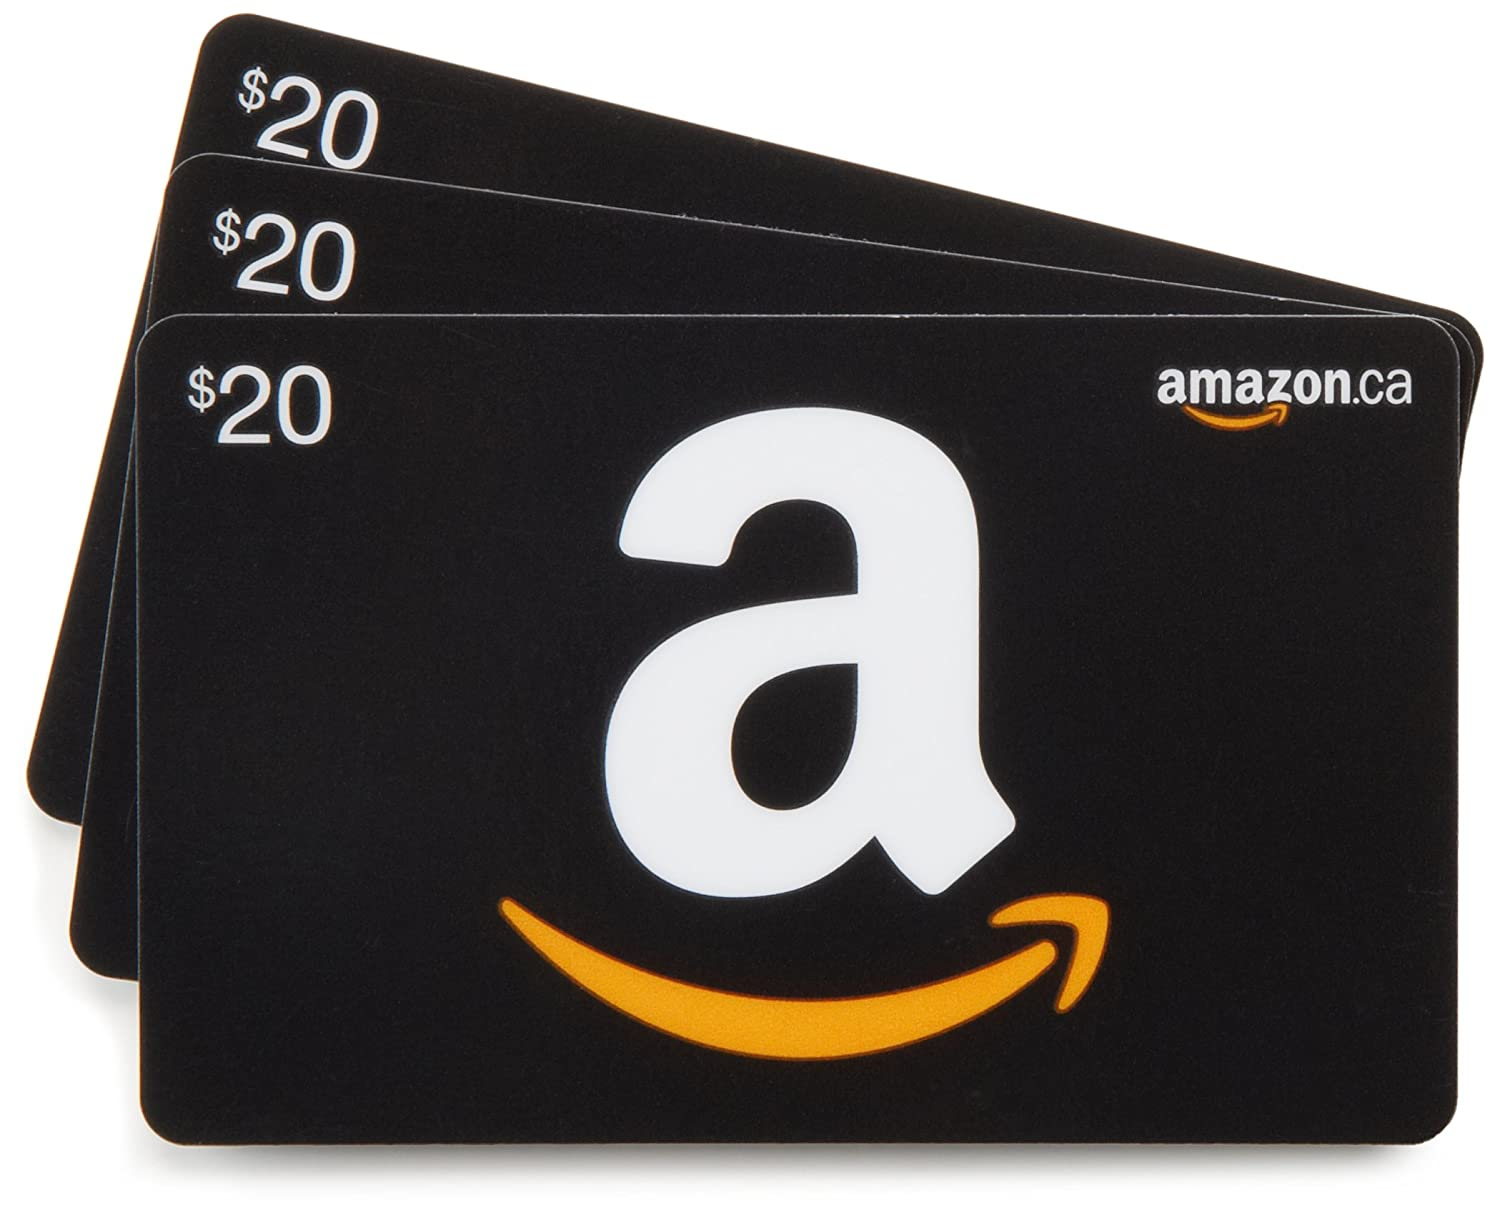 Amazon.ca Gift Cards, Pack of 3 (Various Card Designs) Amazon.ca $10 Gift Cards Amazon.com.ca Inc.